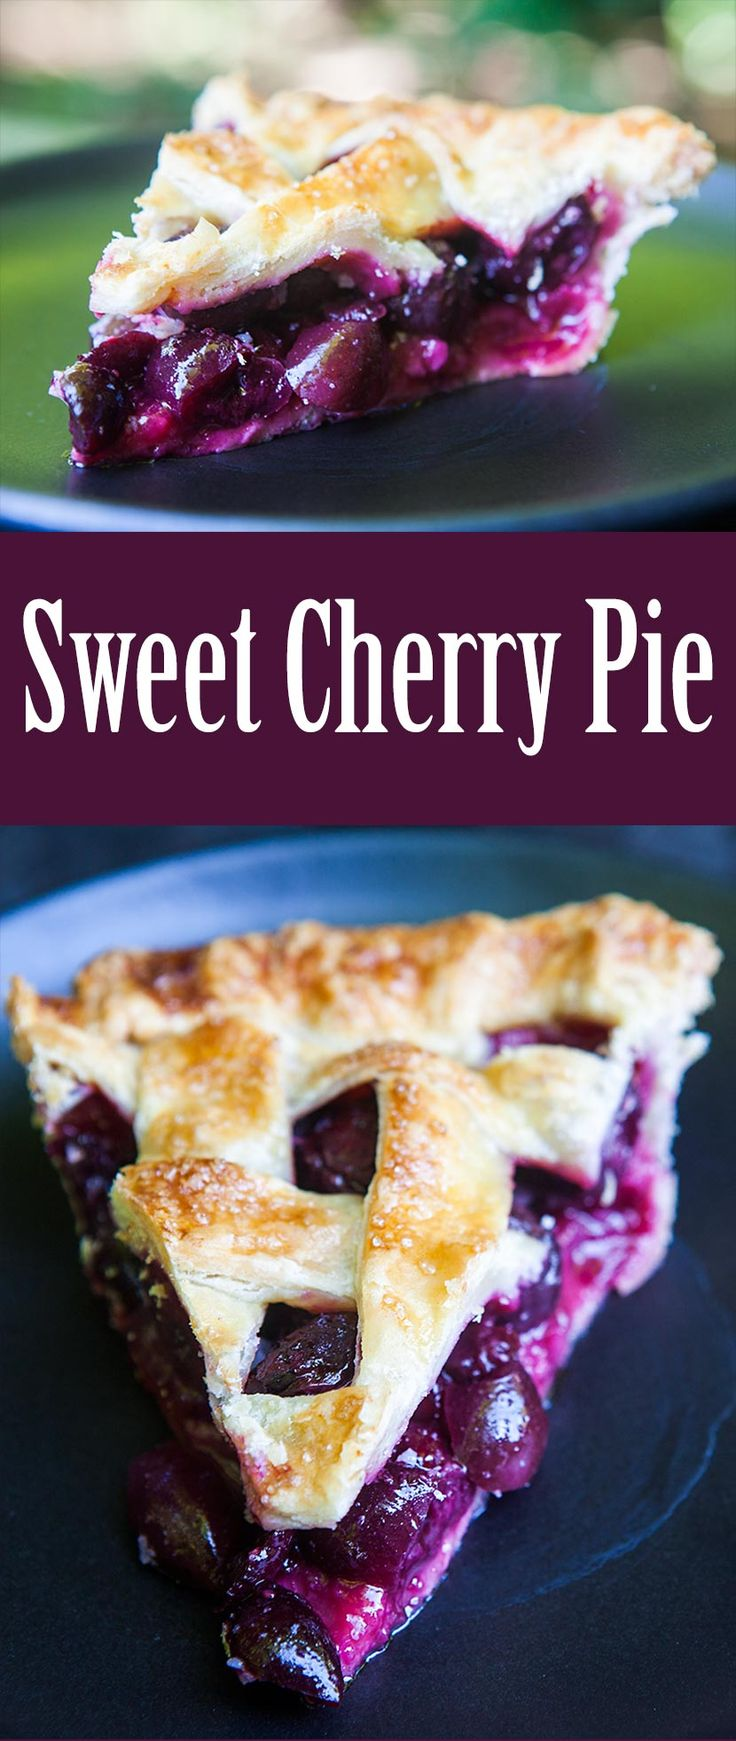 Have fresh sweet cherries? Make sweet cherry pie! So delicious. On SimplyRecipes.com #MemorialDay